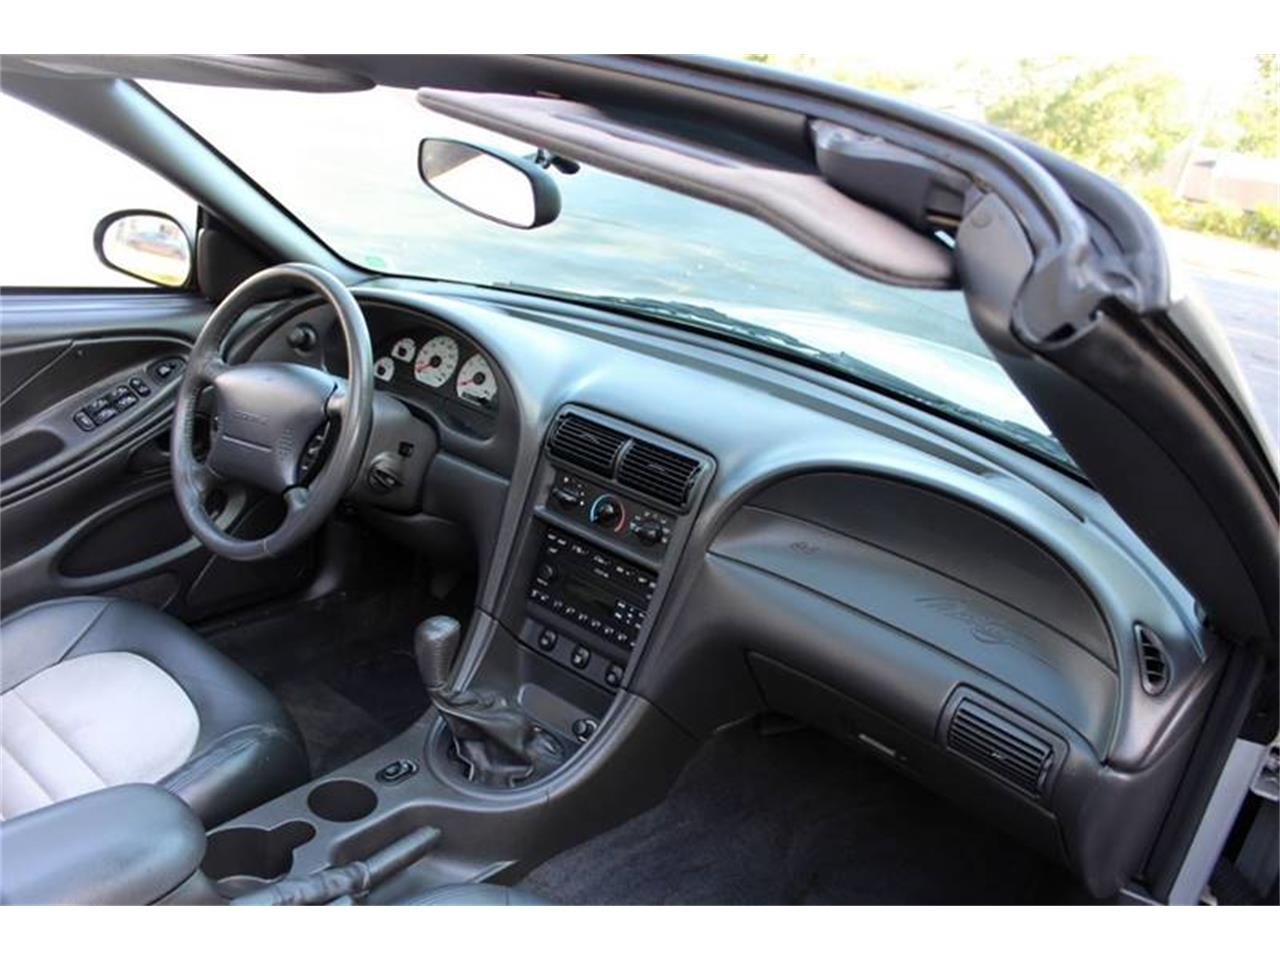 Large Picture of '01 Mustang SVT Cobra located in Florida Offered by PJ's Auto World - PYE0